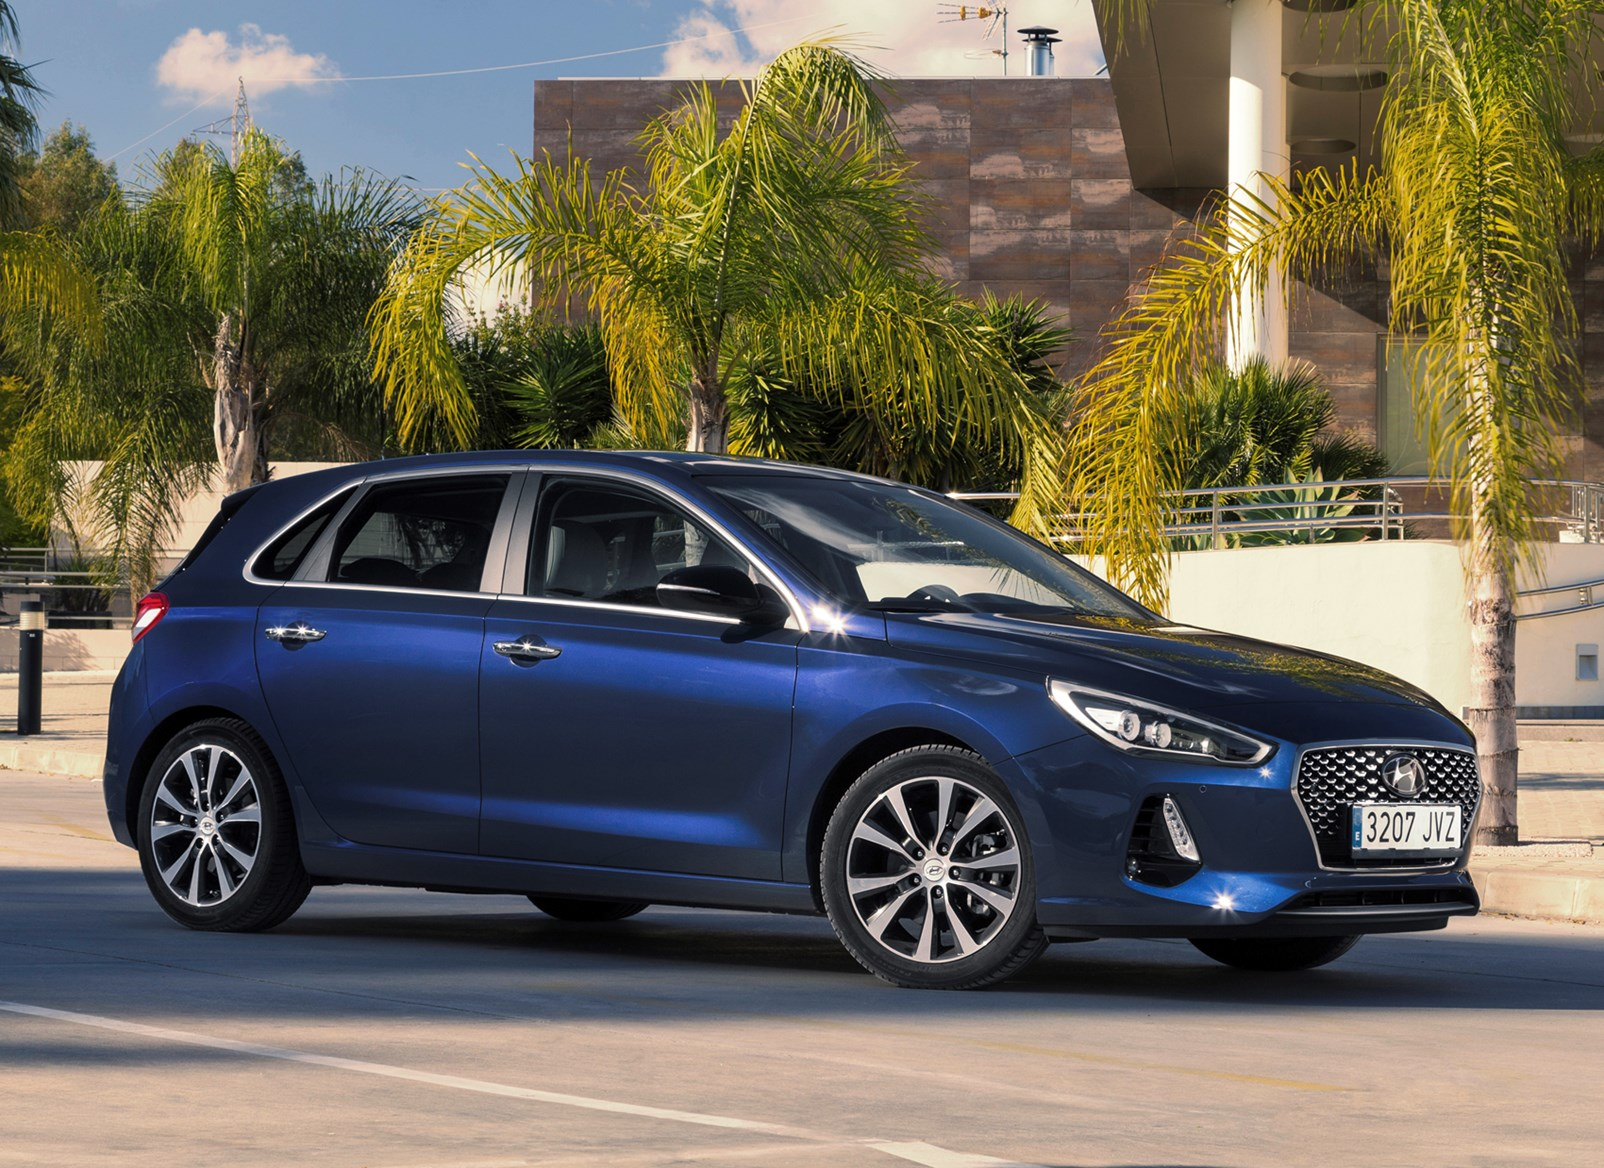 hyundai i30 hatchback review 2017 parkers. Black Bedroom Furniture Sets. Home Design Ideas